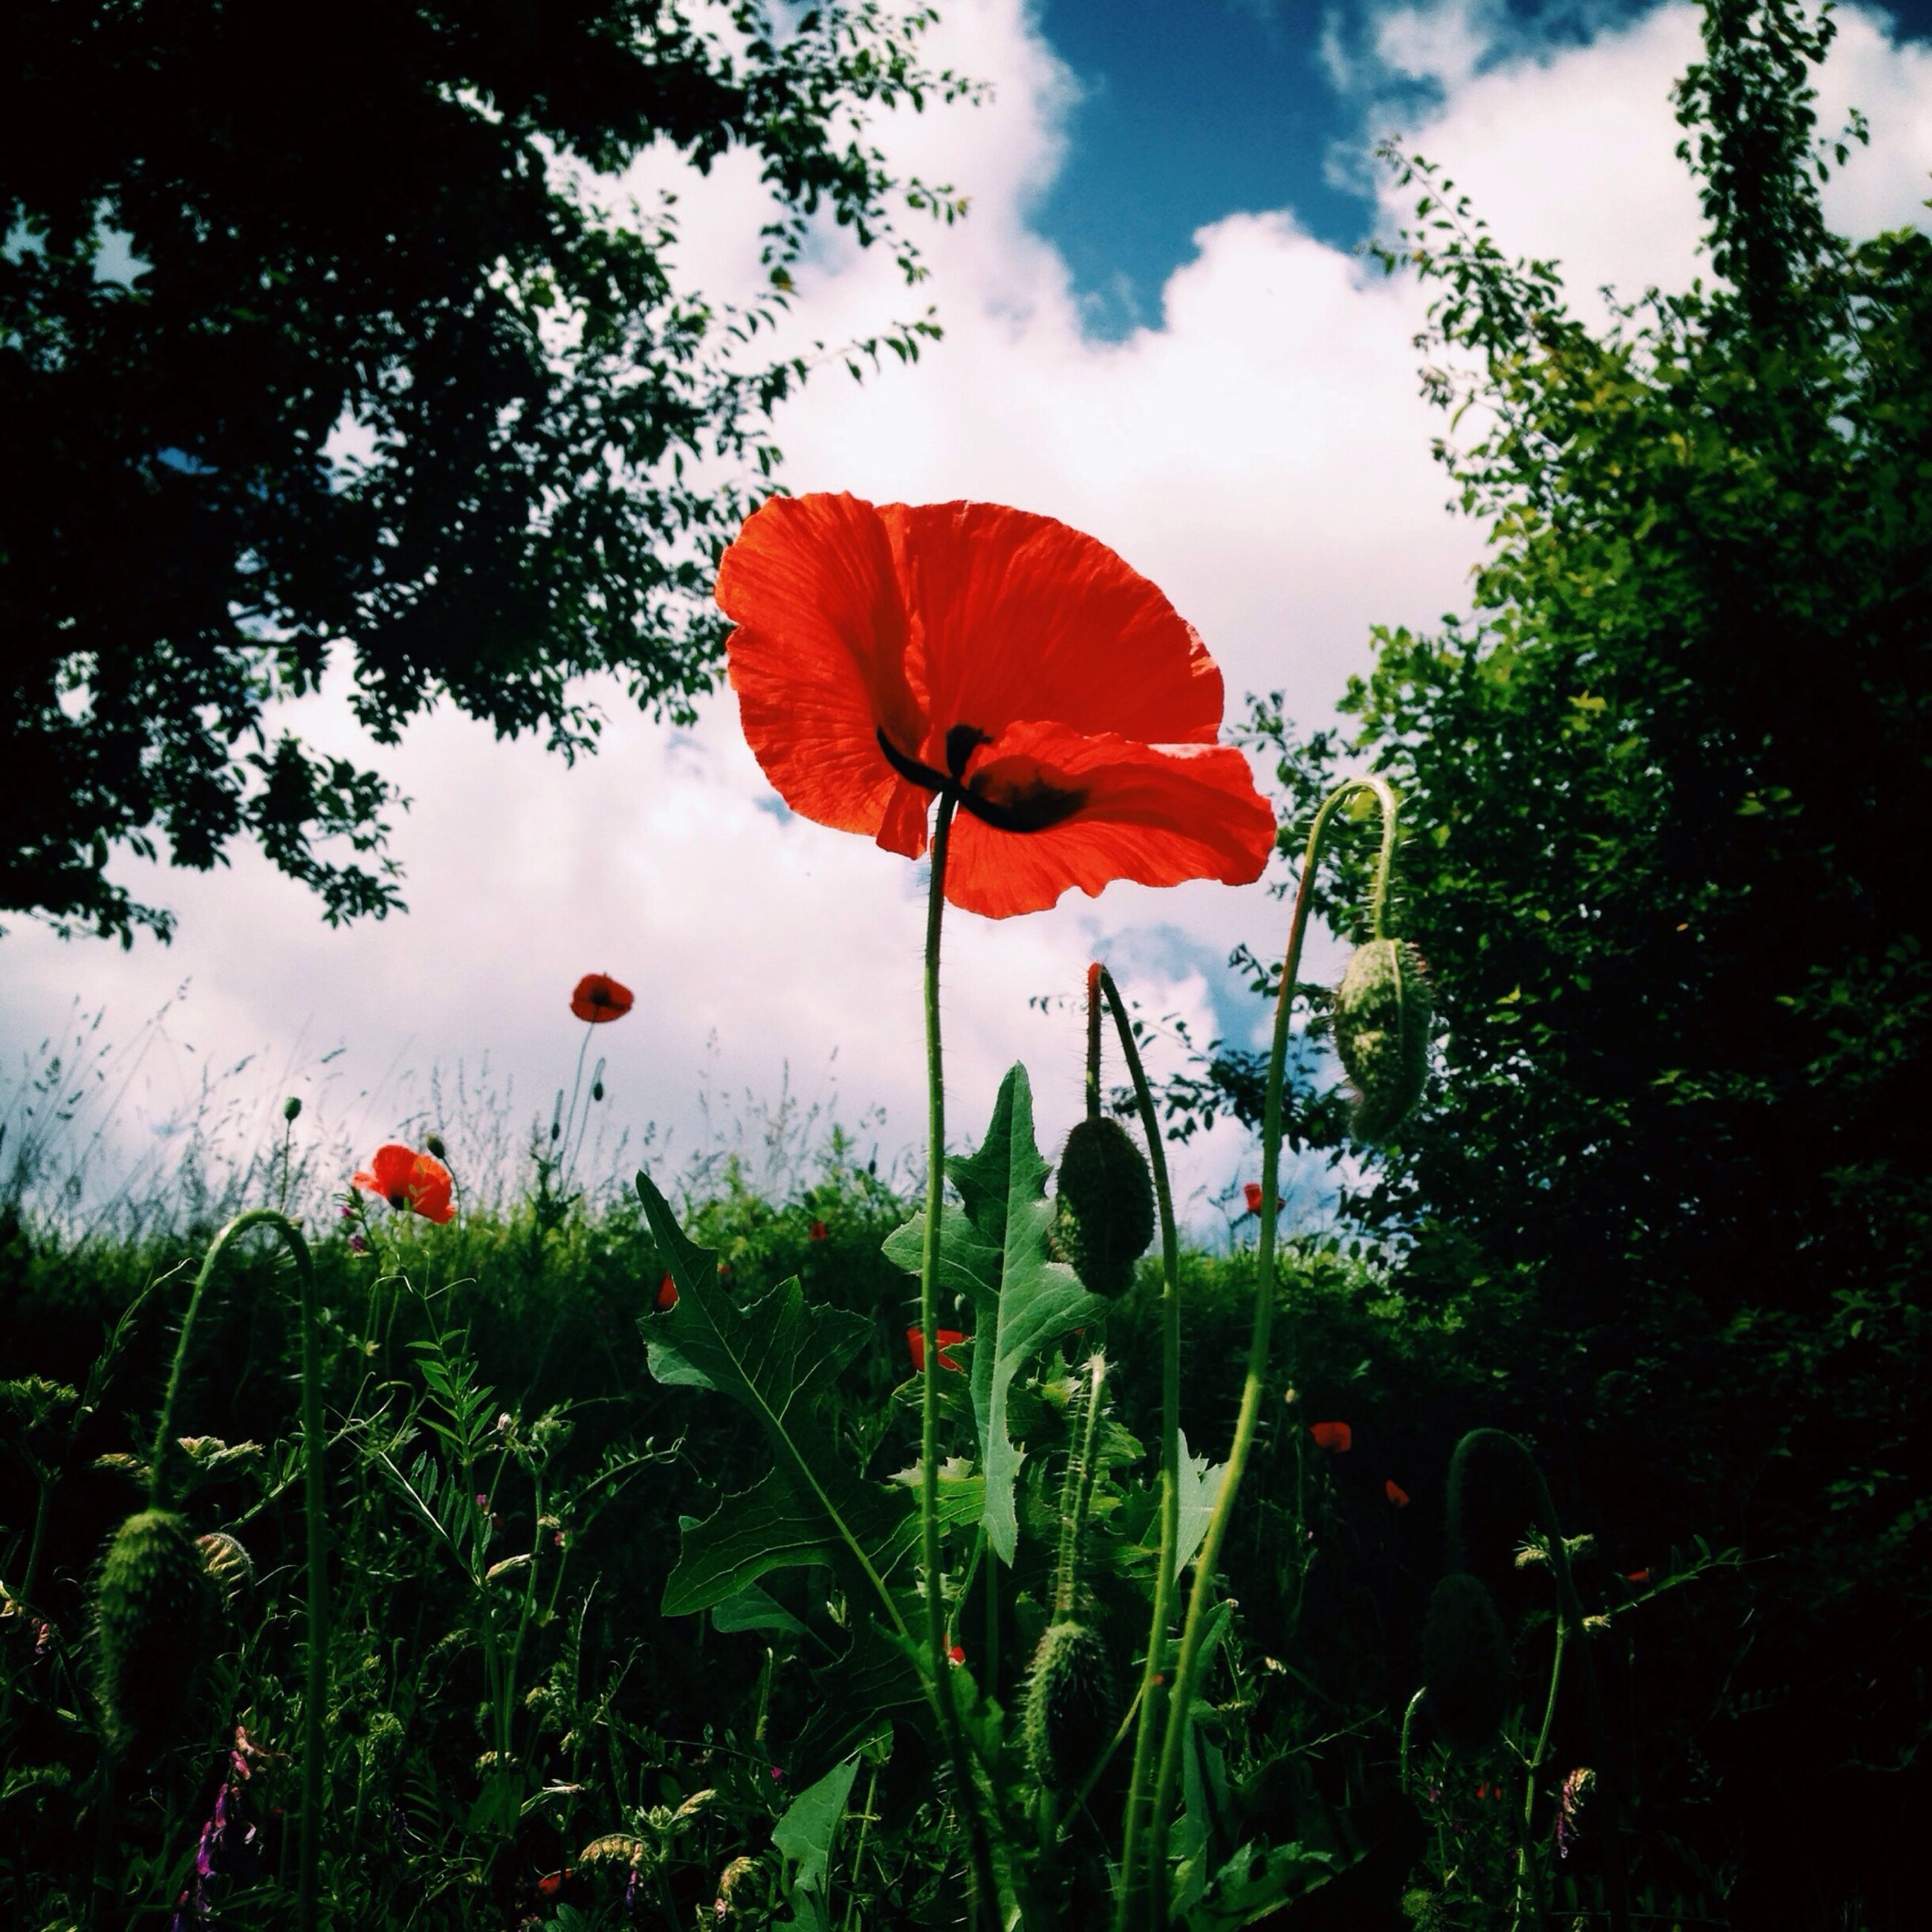 flower, red, growth, fragility, freshness, poppy, petal, beauty in nature, sky, plant, nature, field, flower head, stem, blooming, leaf, orange color, grass, cloud - sky, tranquility